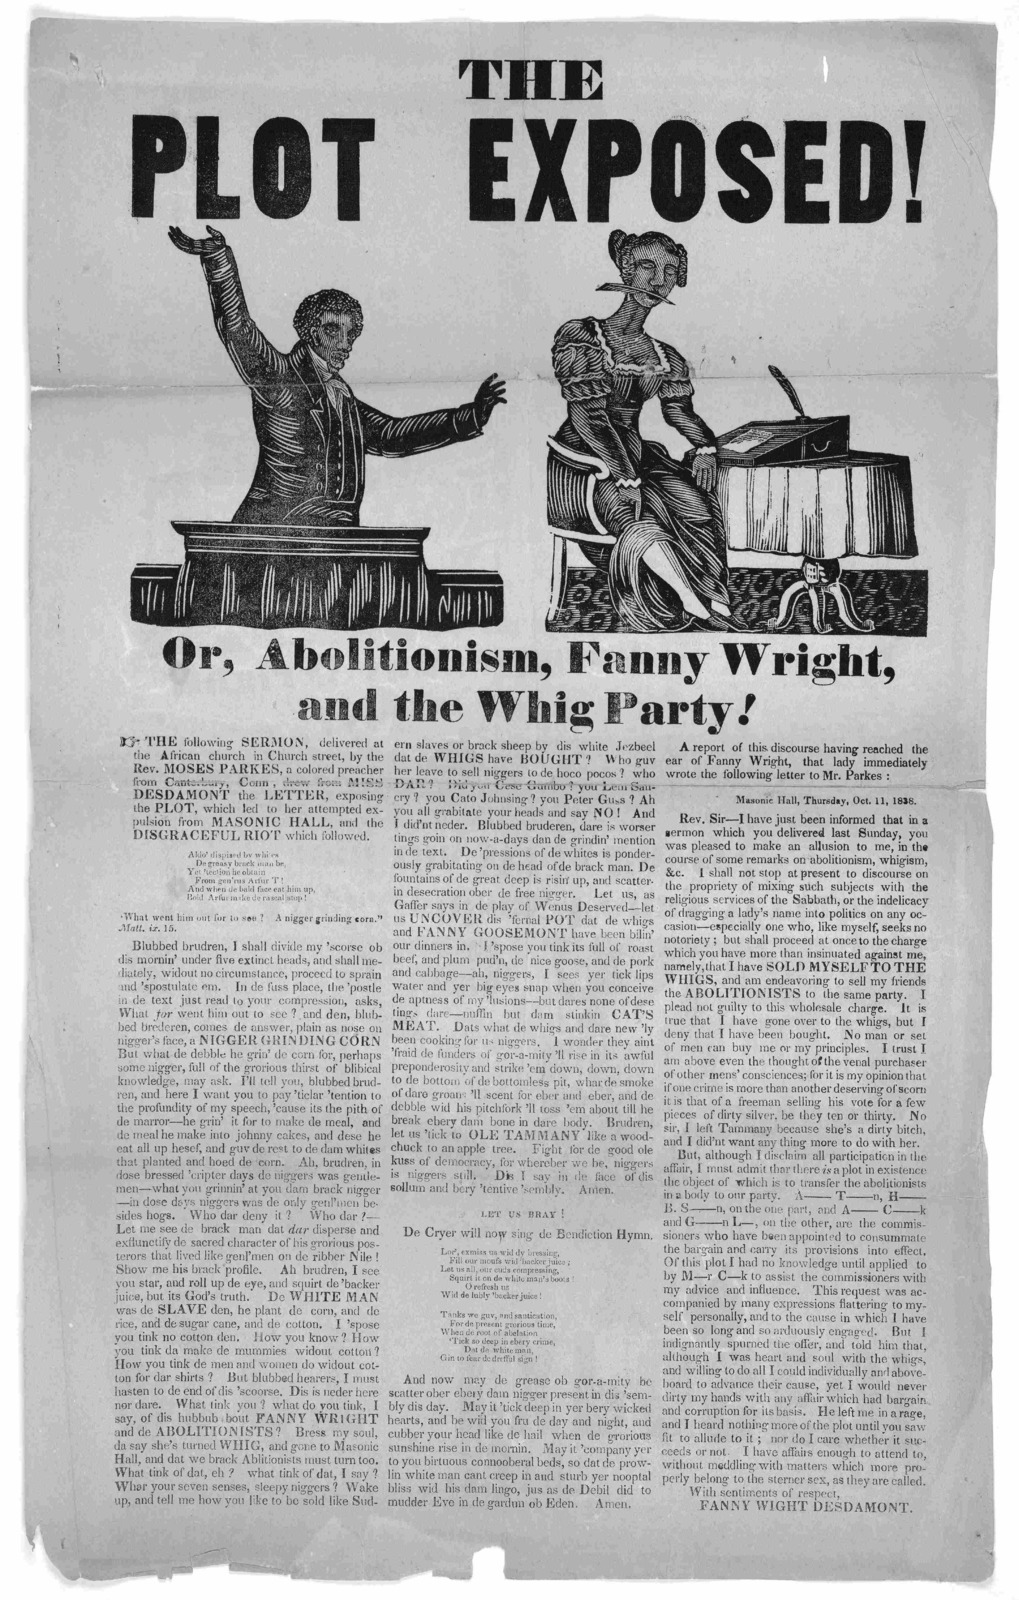 The plot exposed! or, Abolitionism, Fanny Wright, and the Whig party! The following sermon, delivered at the African church in Church Street, by the Rev. Moses Parkes, a colored preacher from Canterbury, Conn, drew from Miss Desdamont the letter